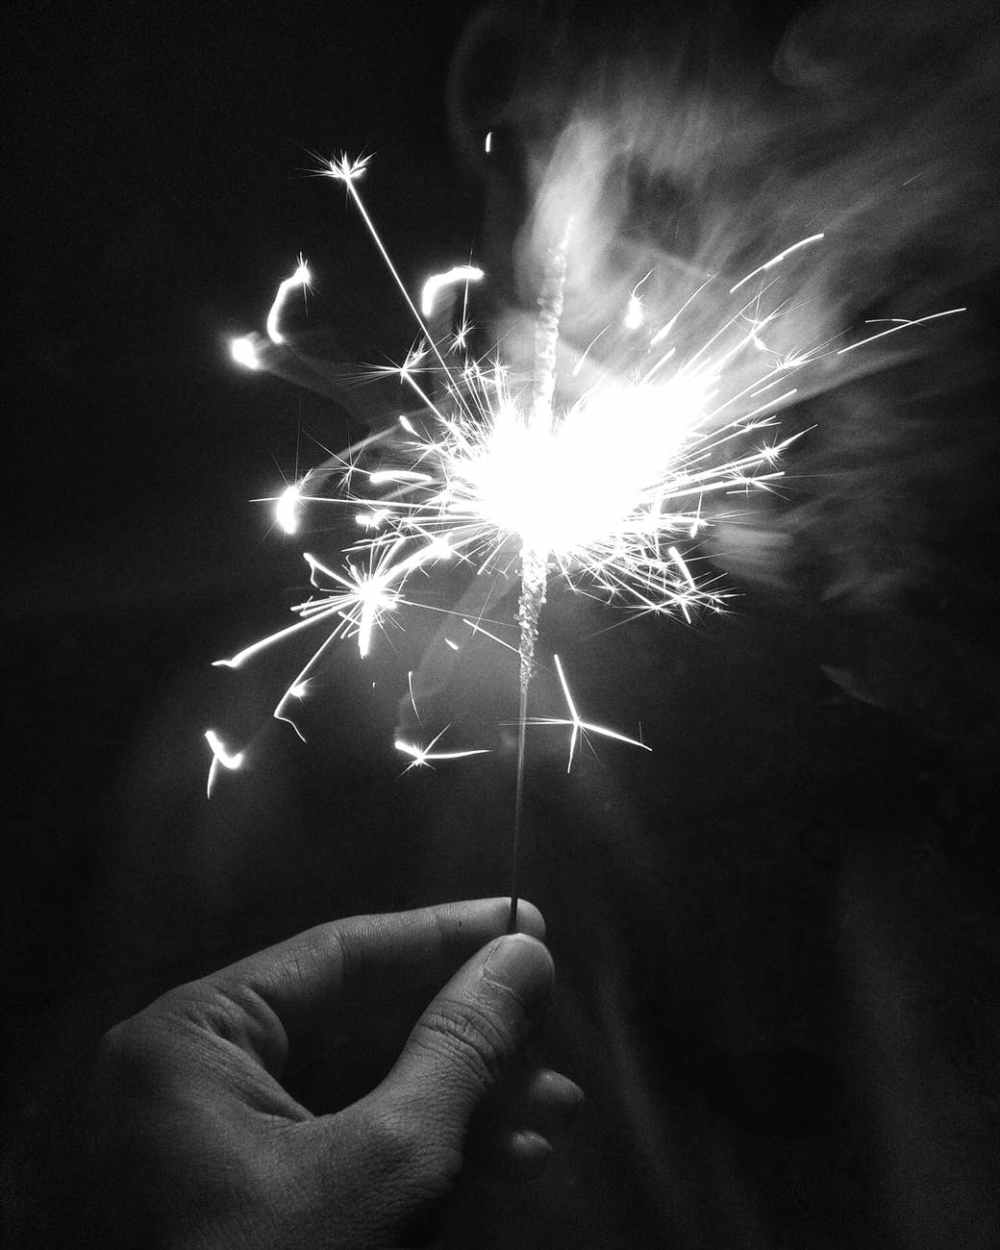 monochrome photo of person holding sparkler